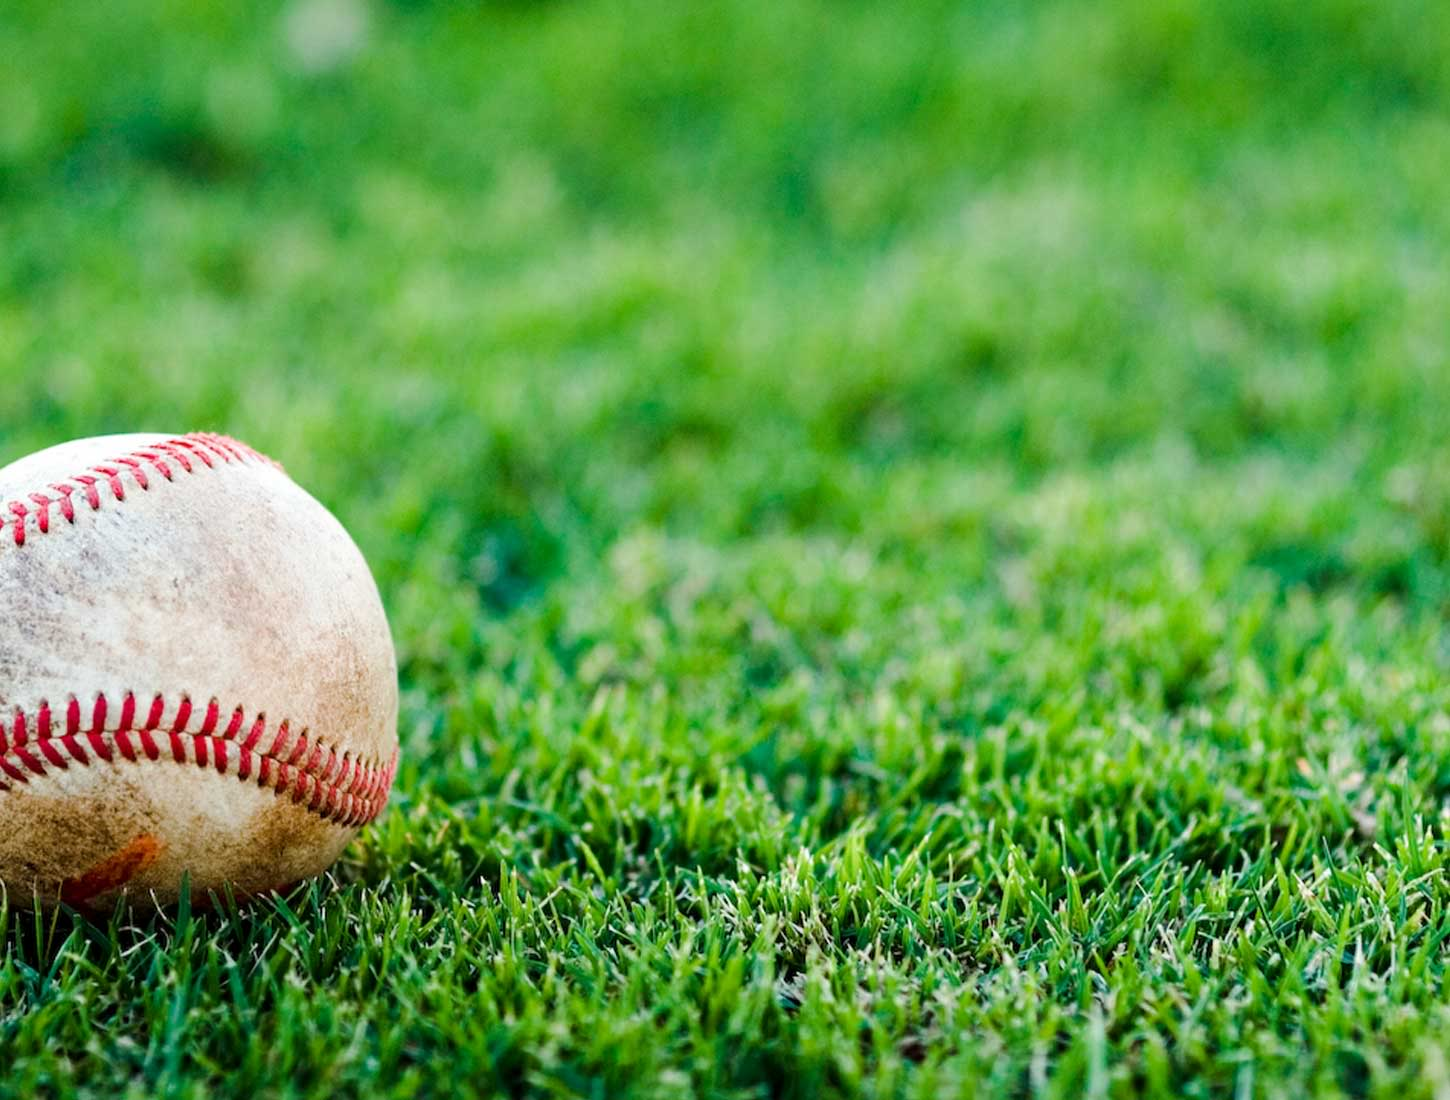 mlb baseball fields wallpaper - photo #27